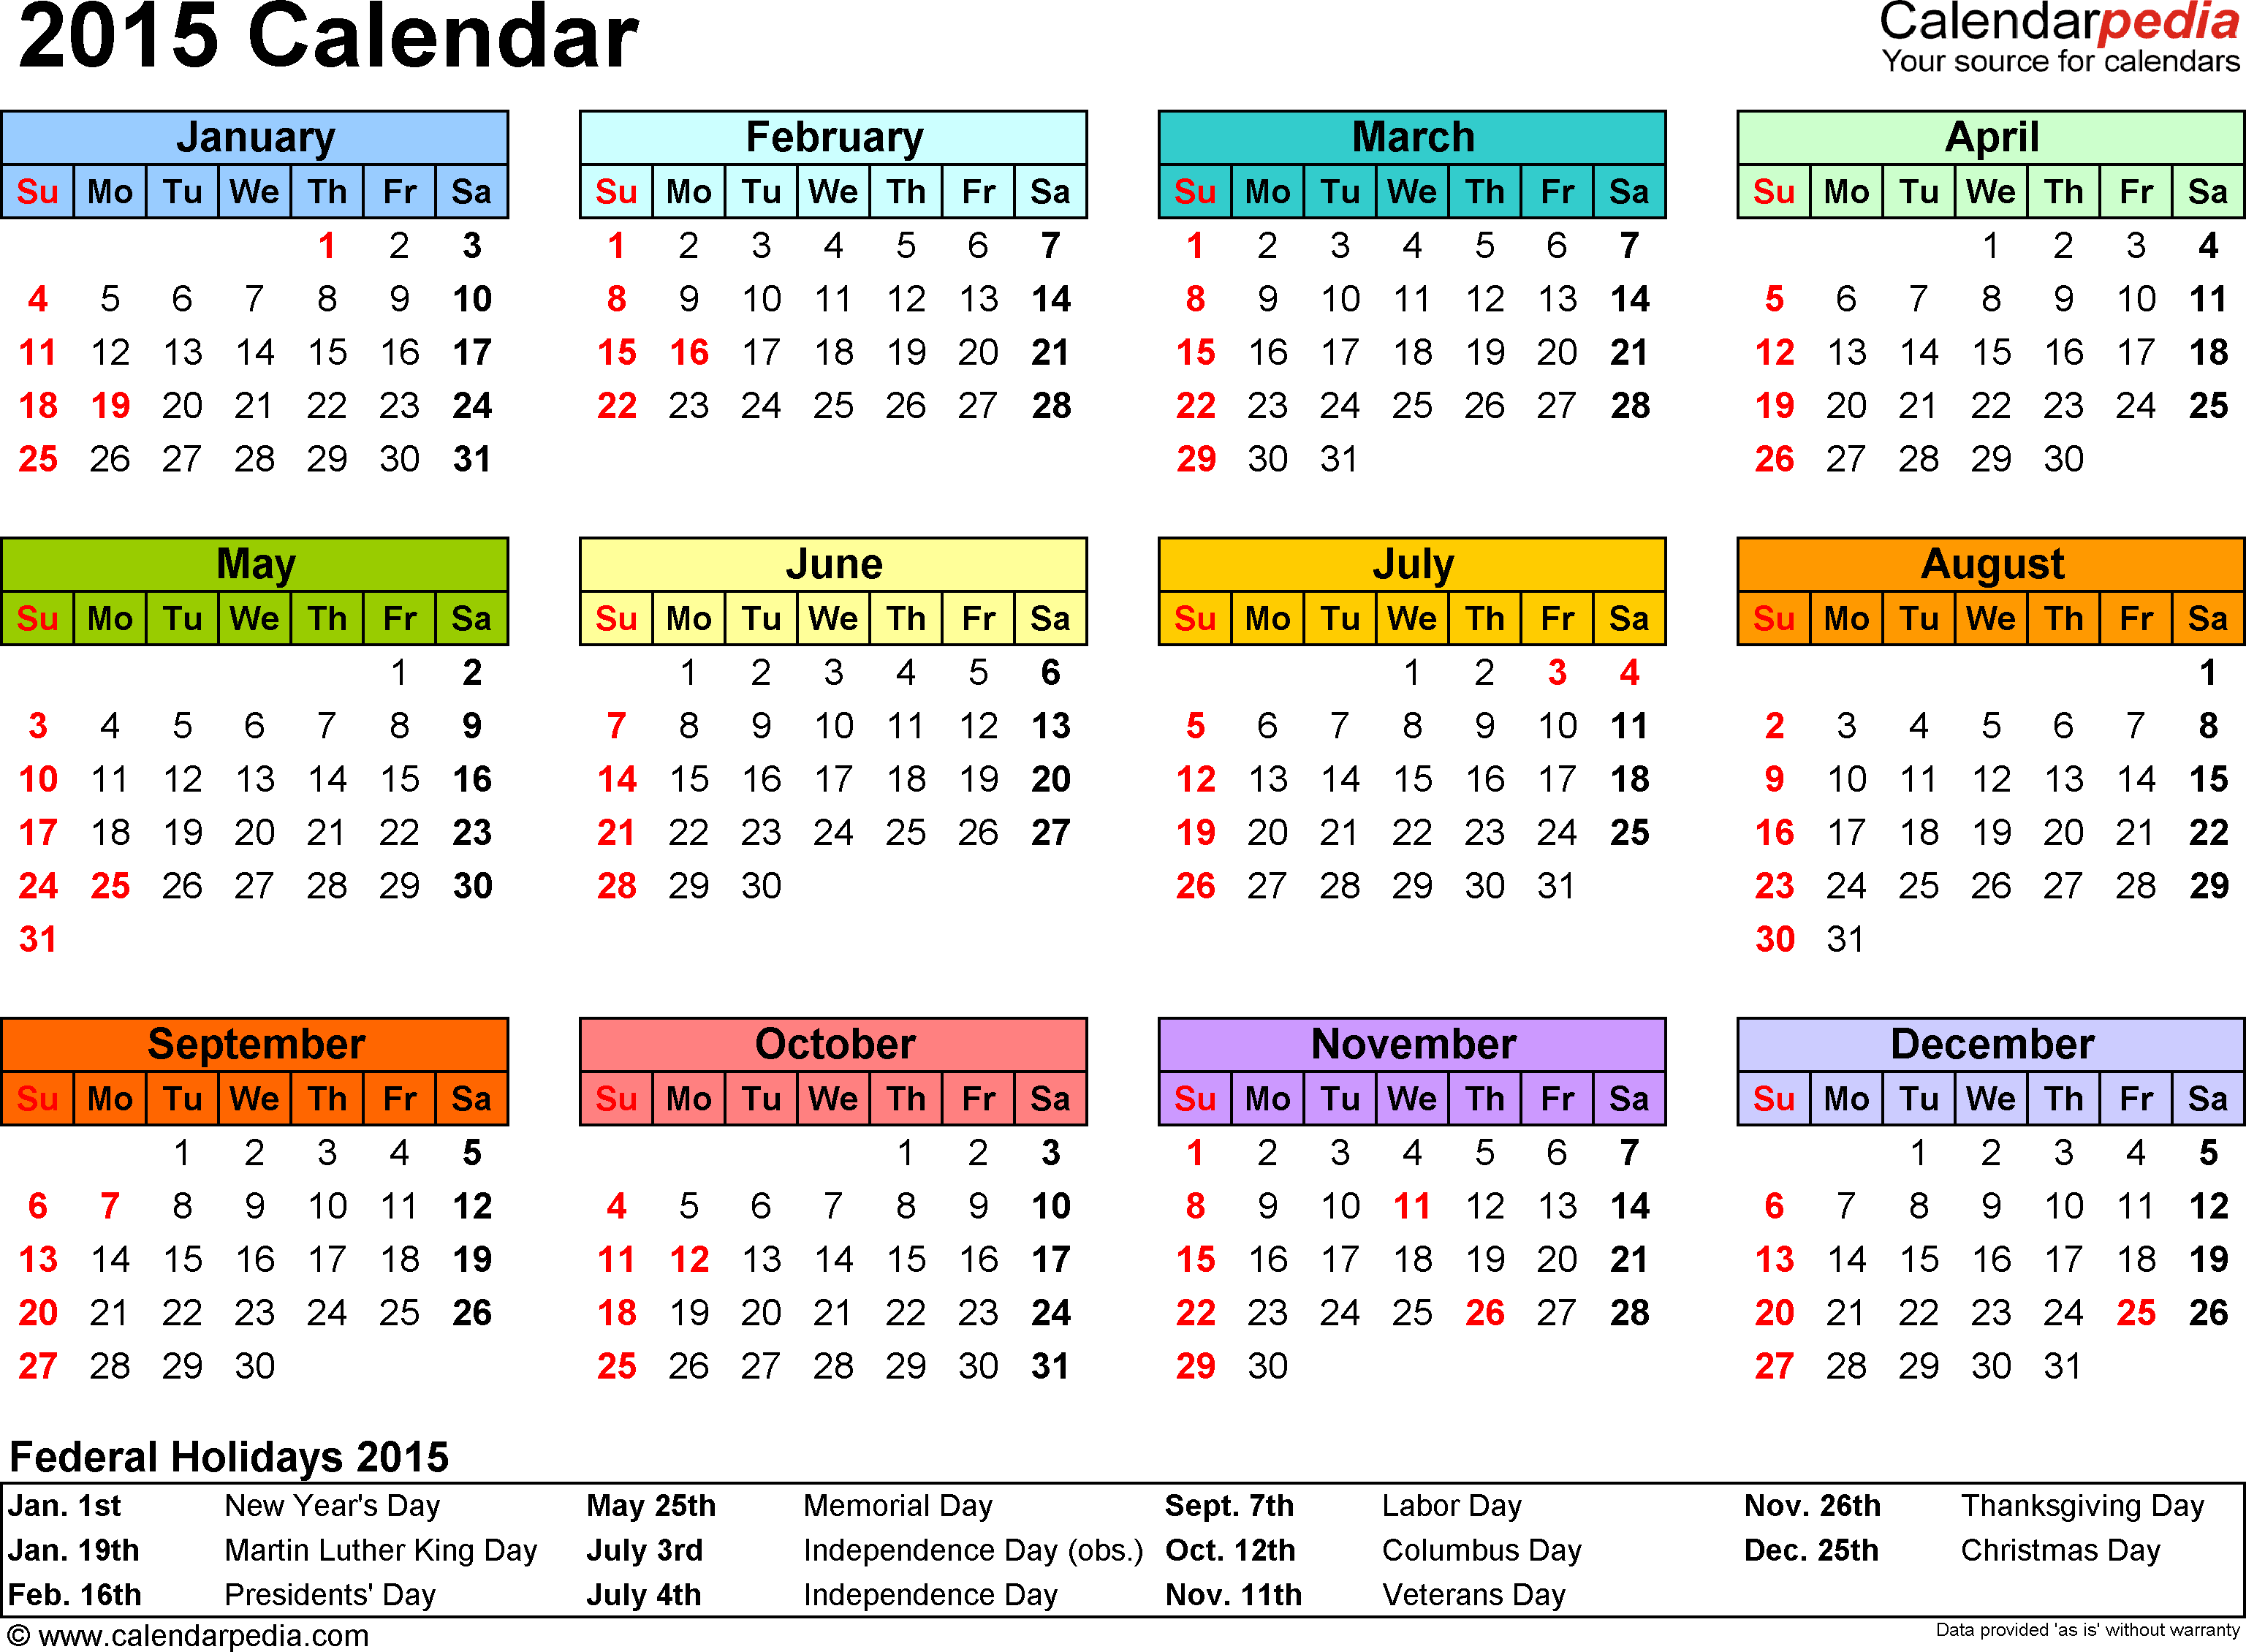 2015 Calendar PDF - 16 free printable calendar templates for PDF